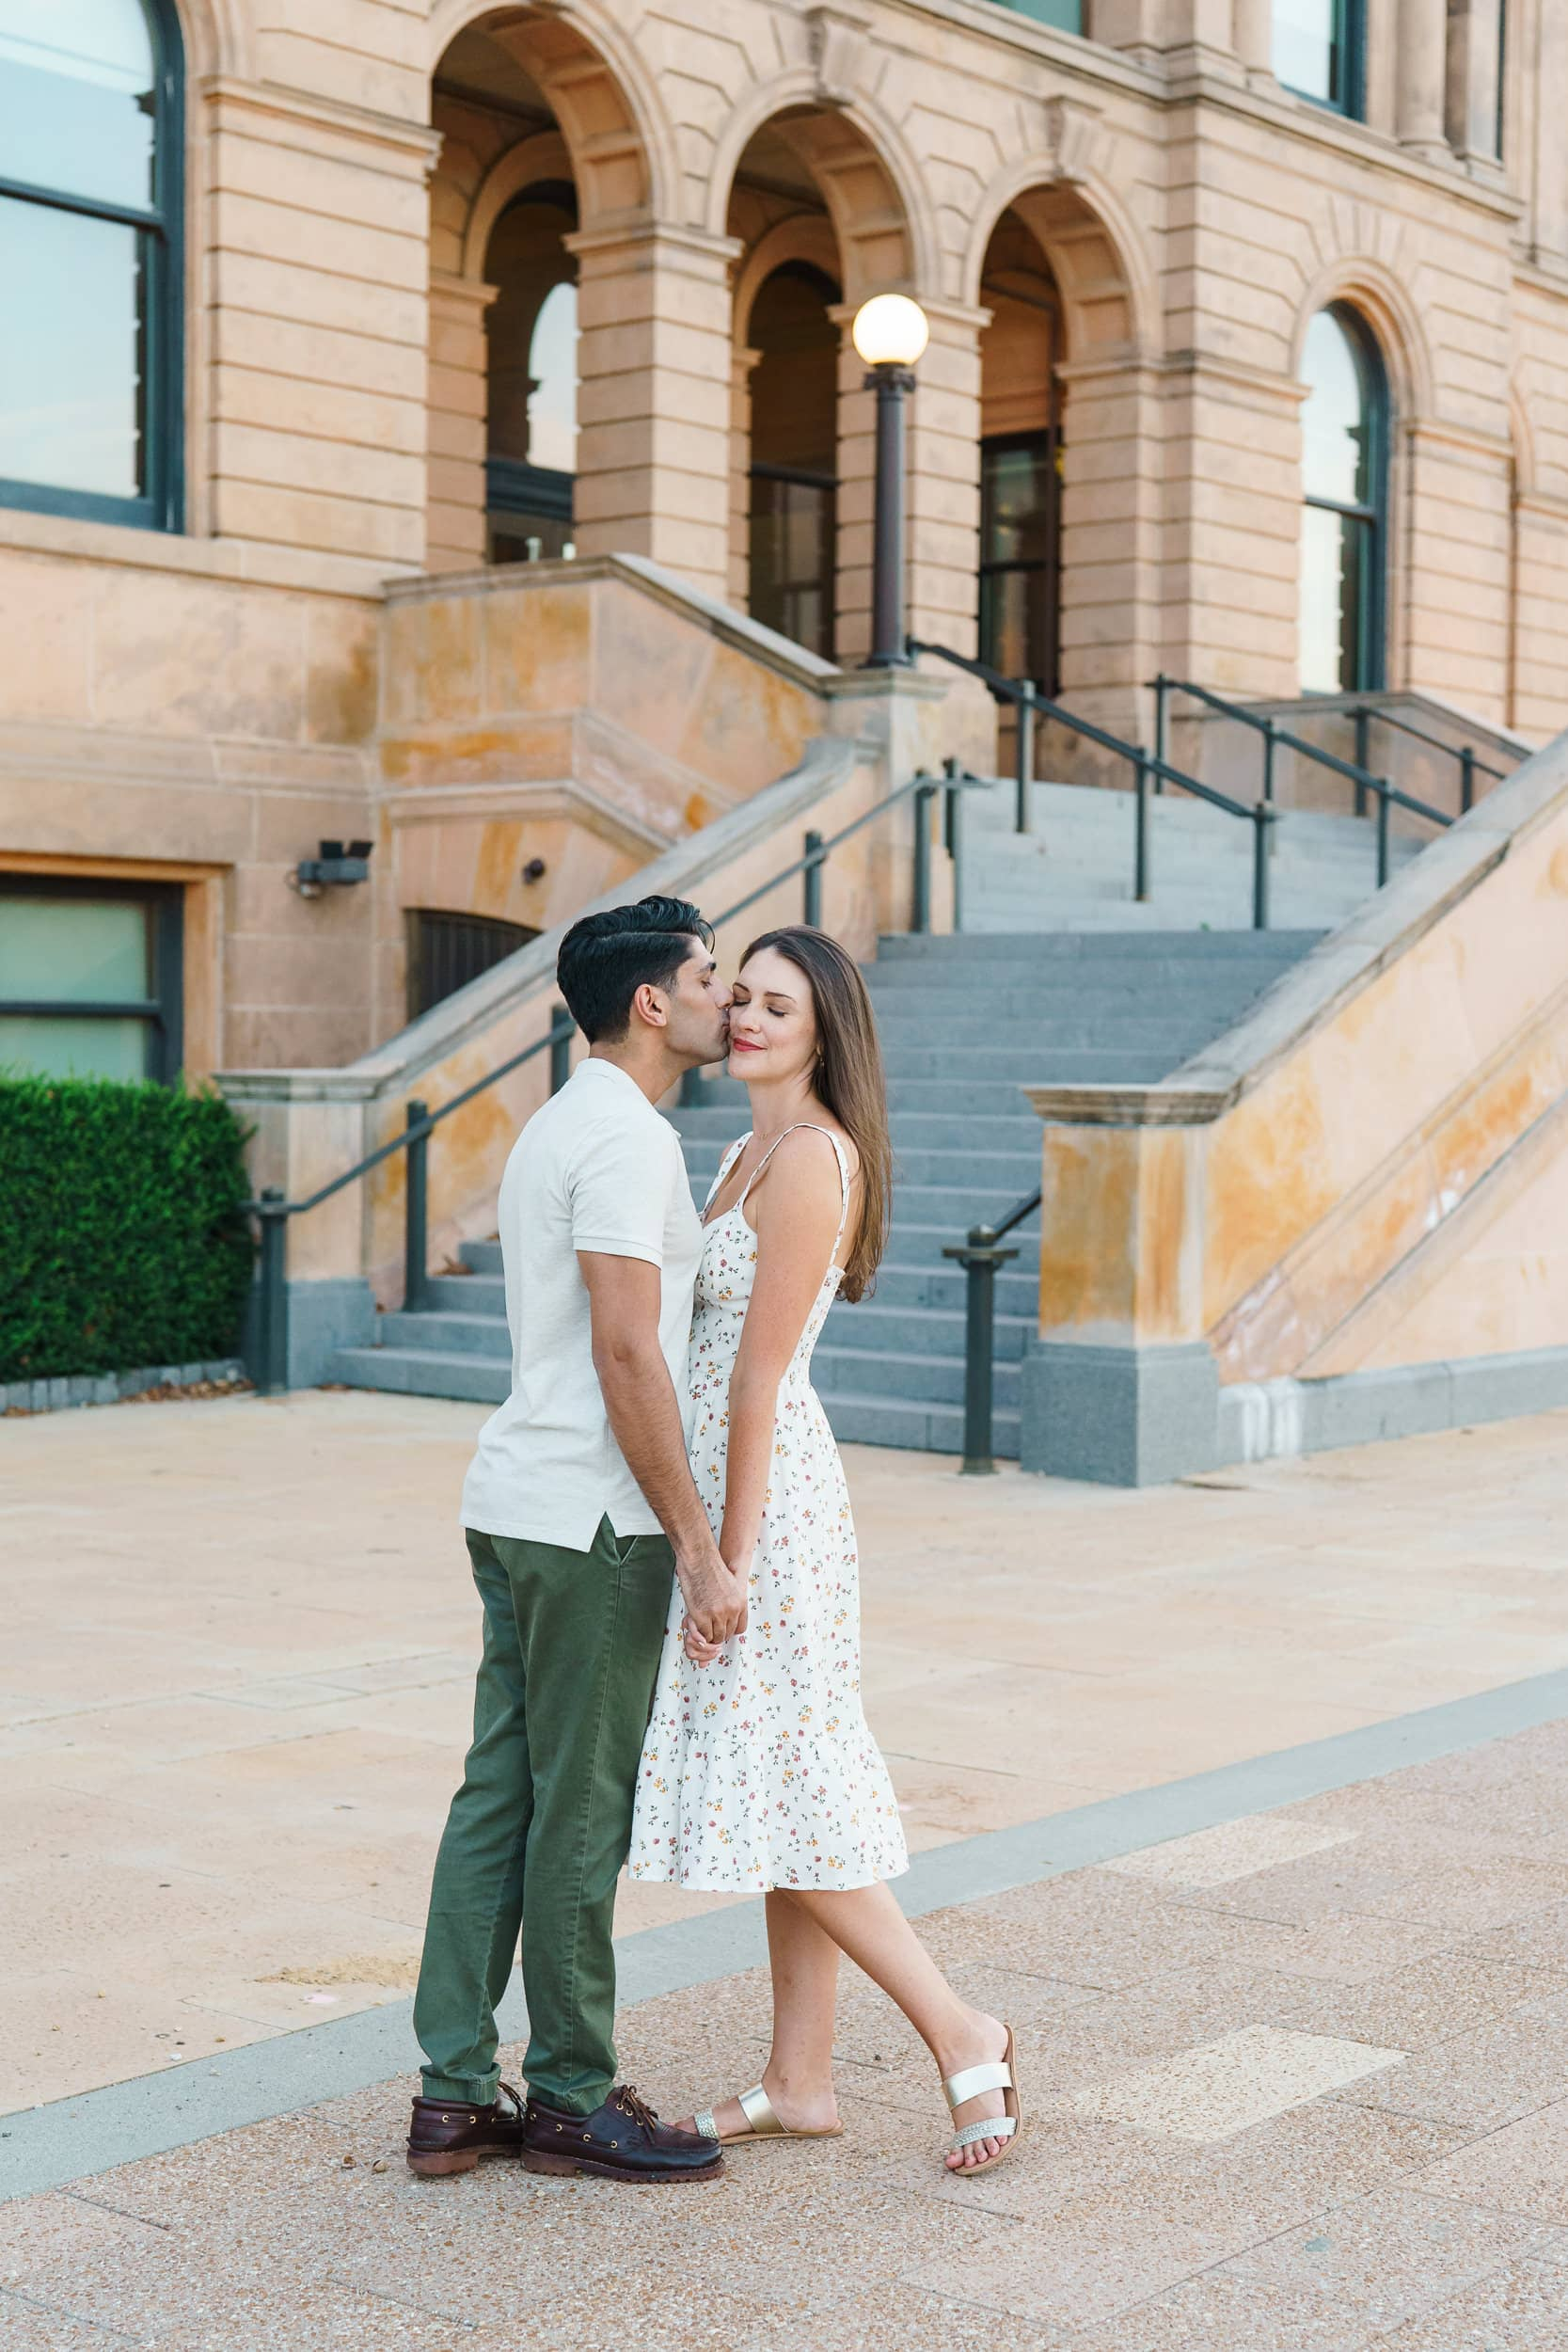 engagement pictures at world food prize building